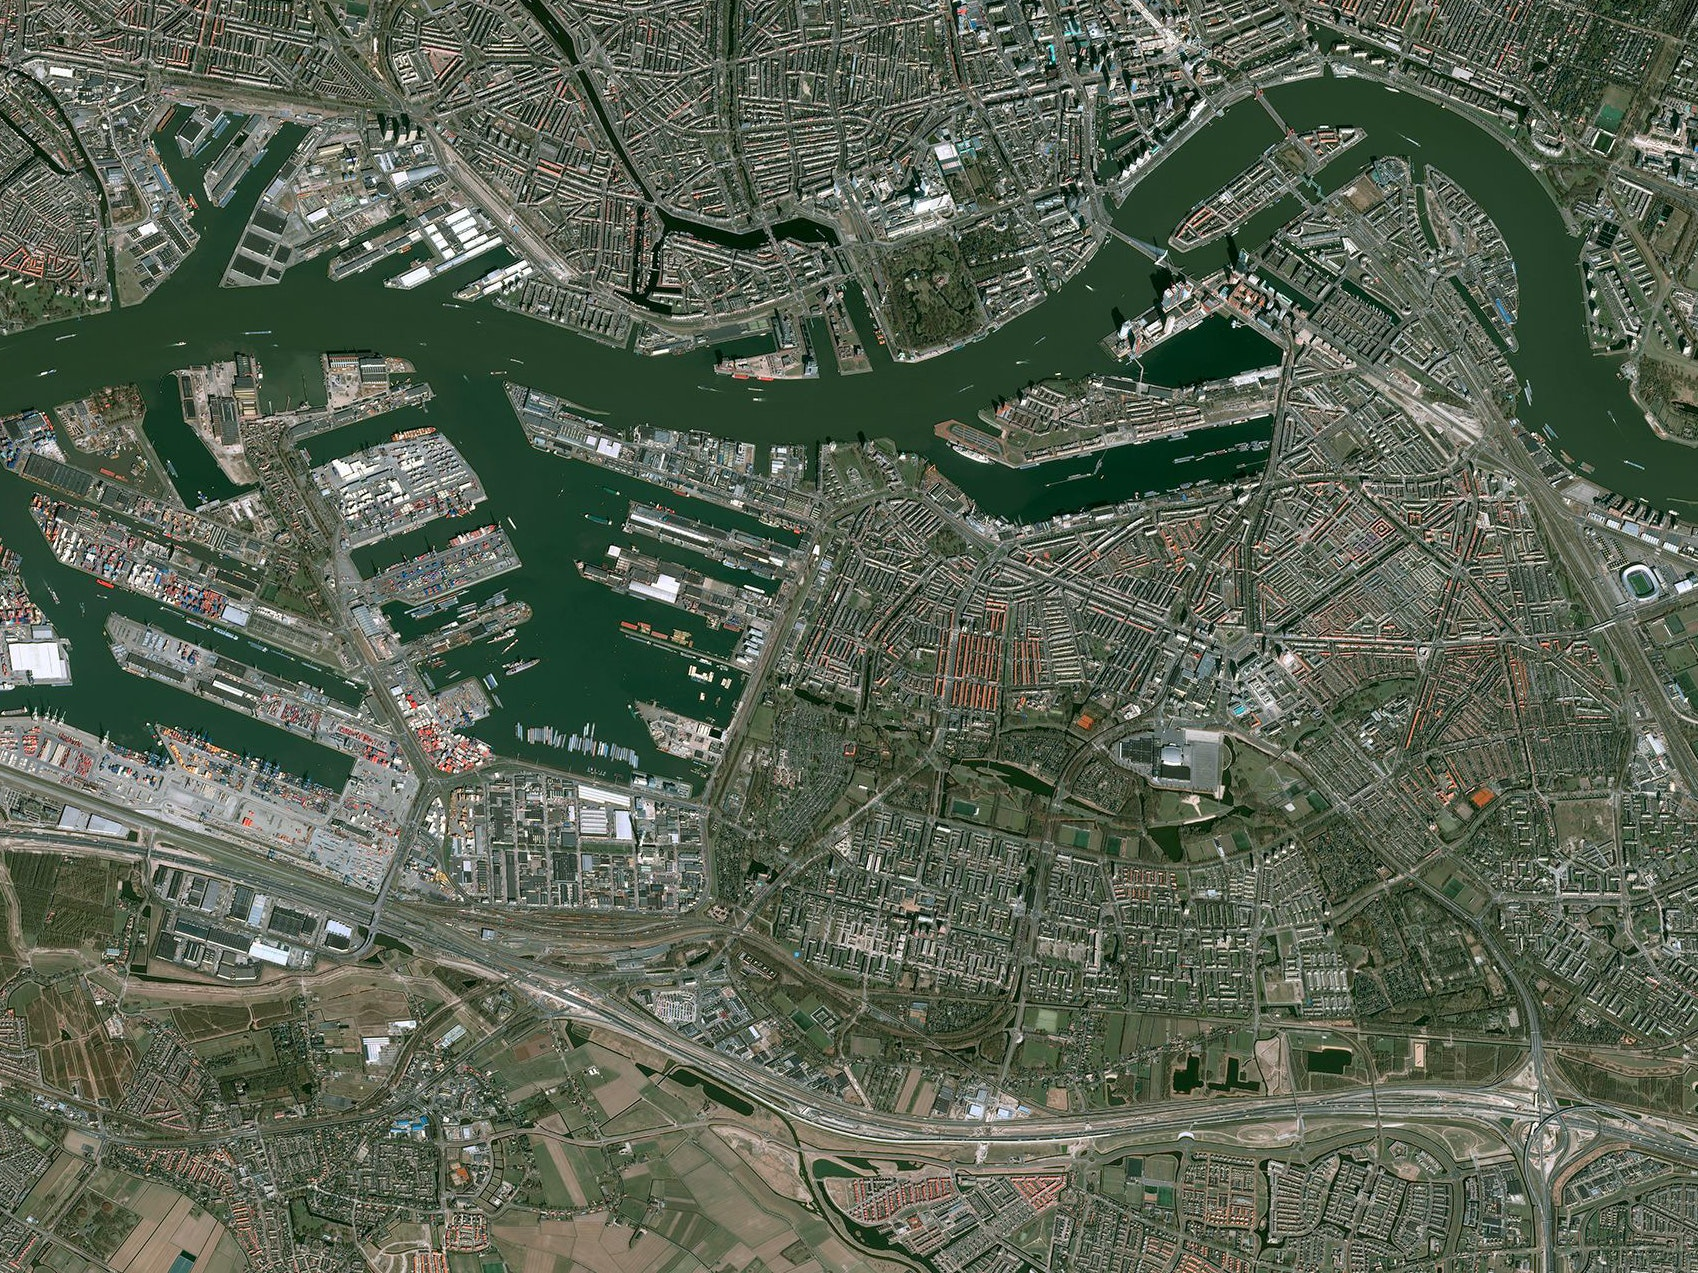 The Pleiades 1-A satellite image of Rotterdam.